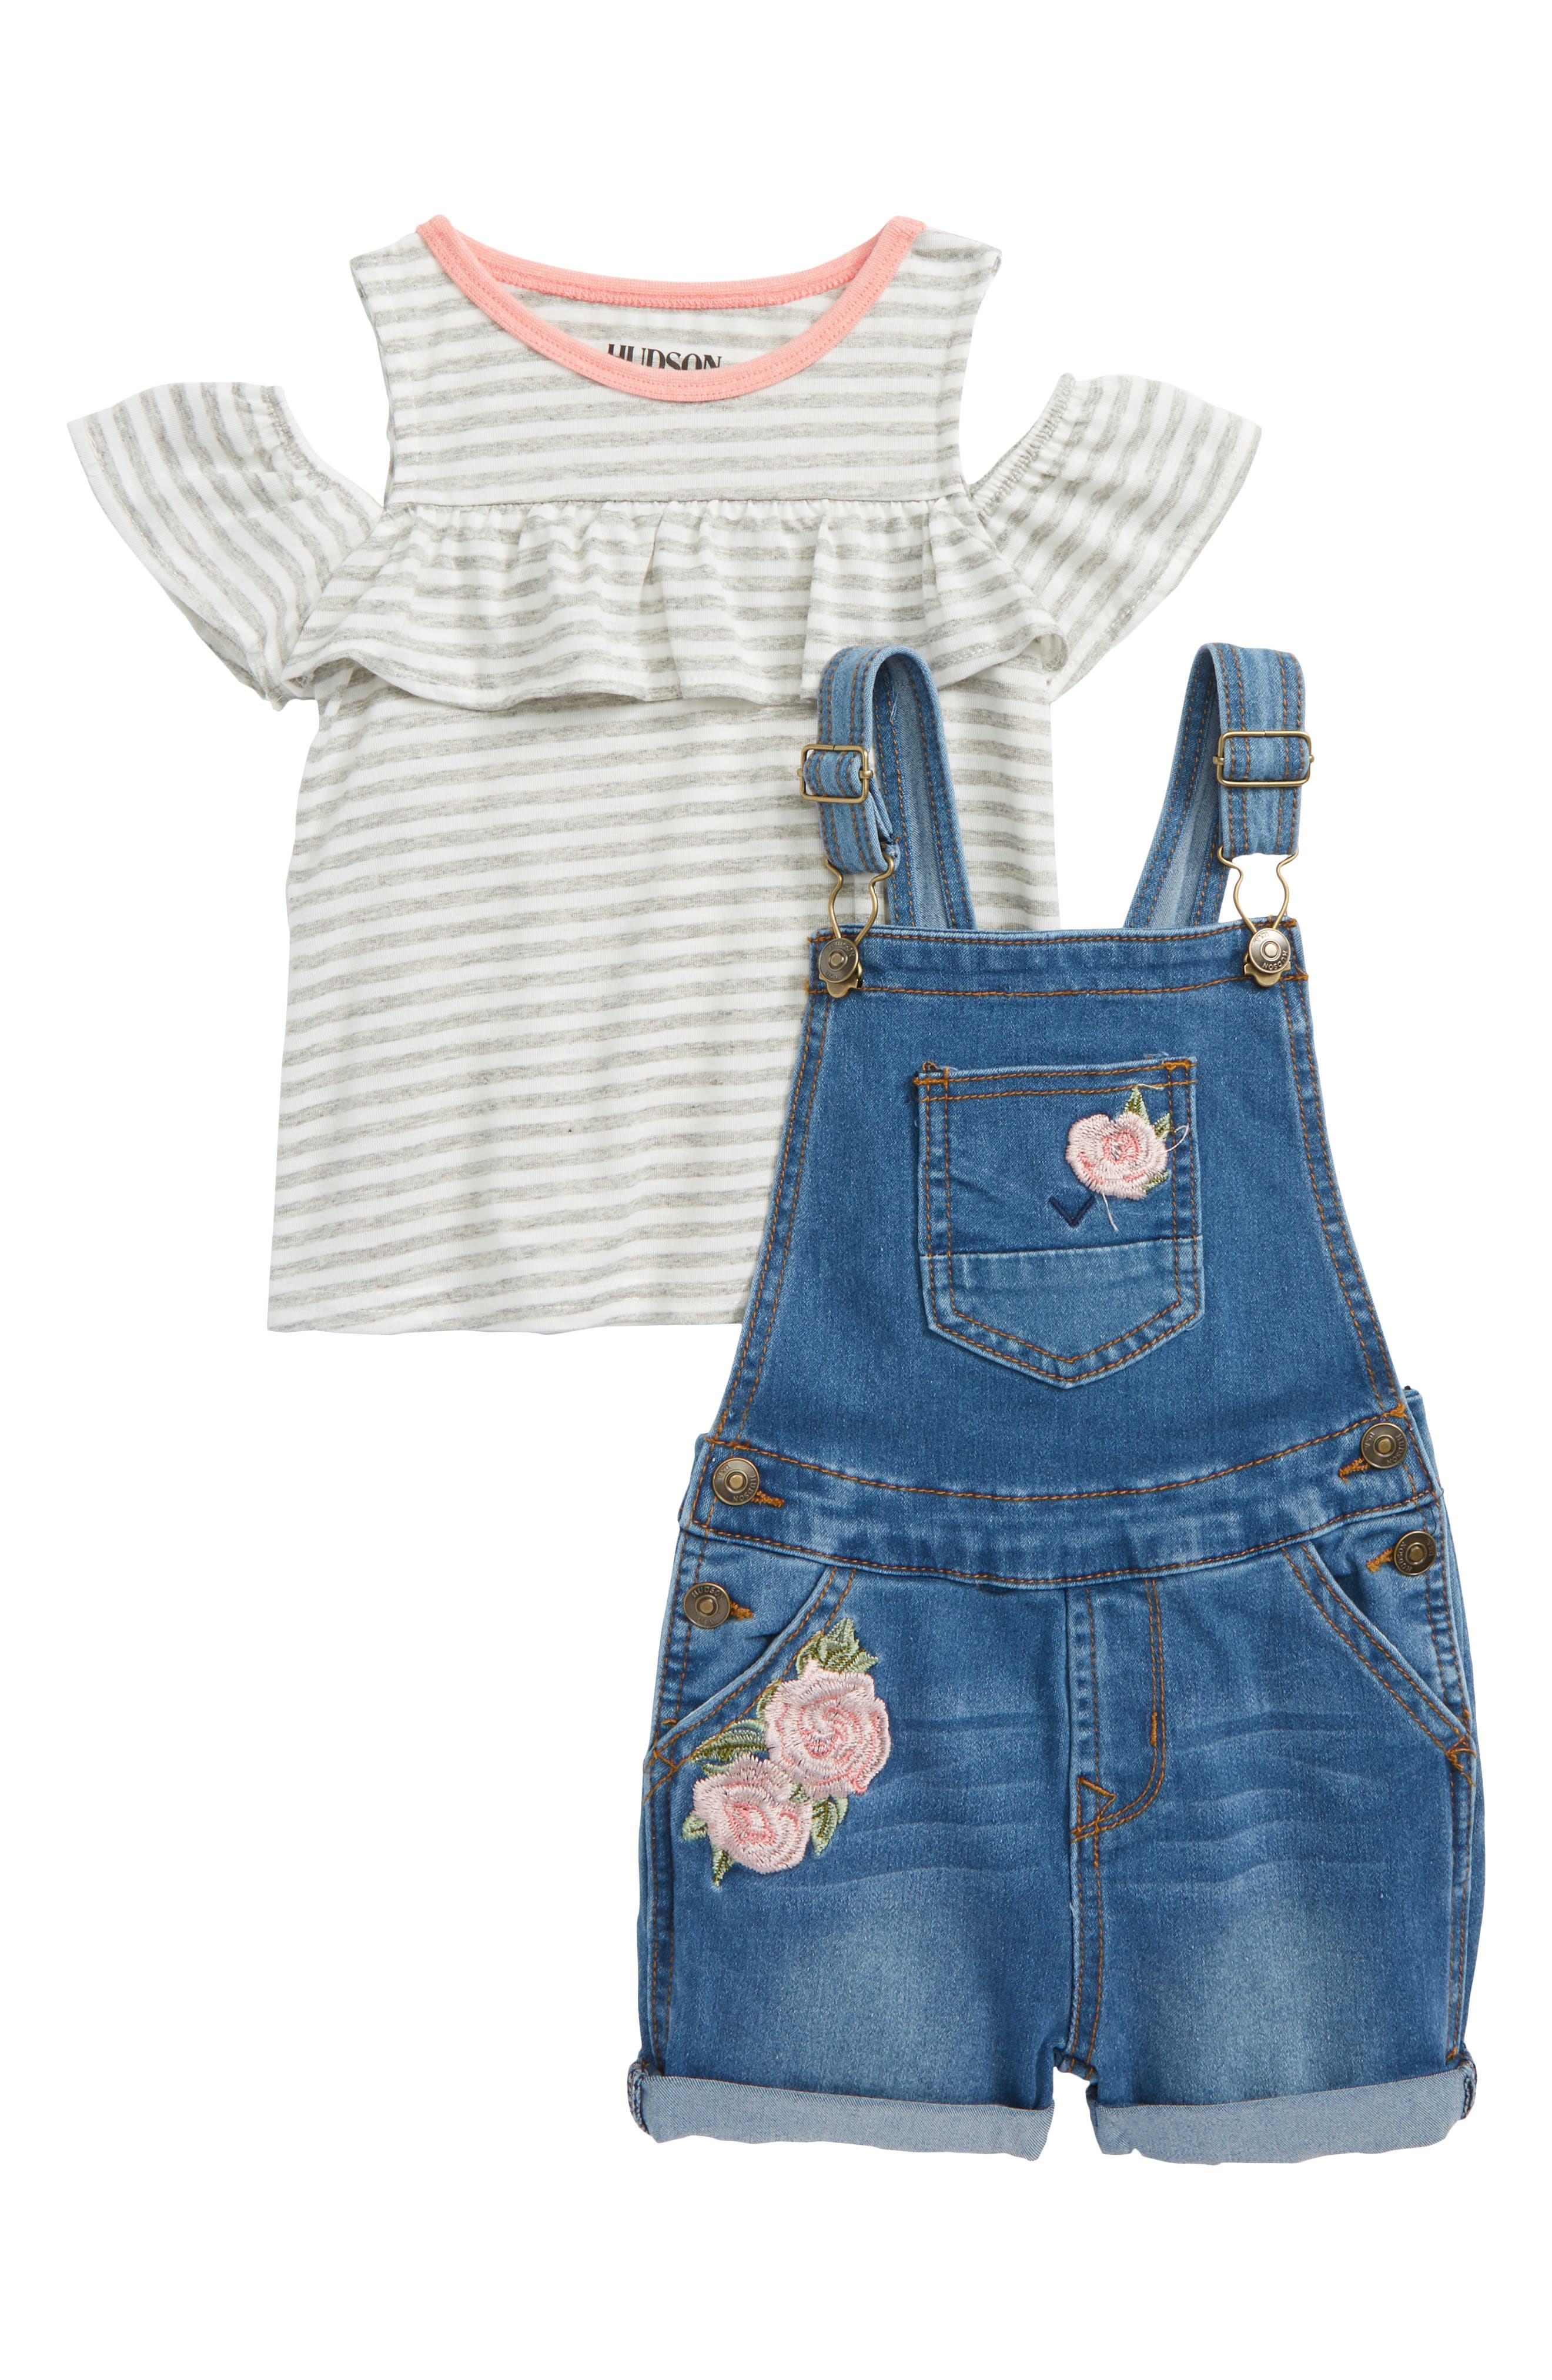 Overalls & Tee Set,                         Main,                         color, 499